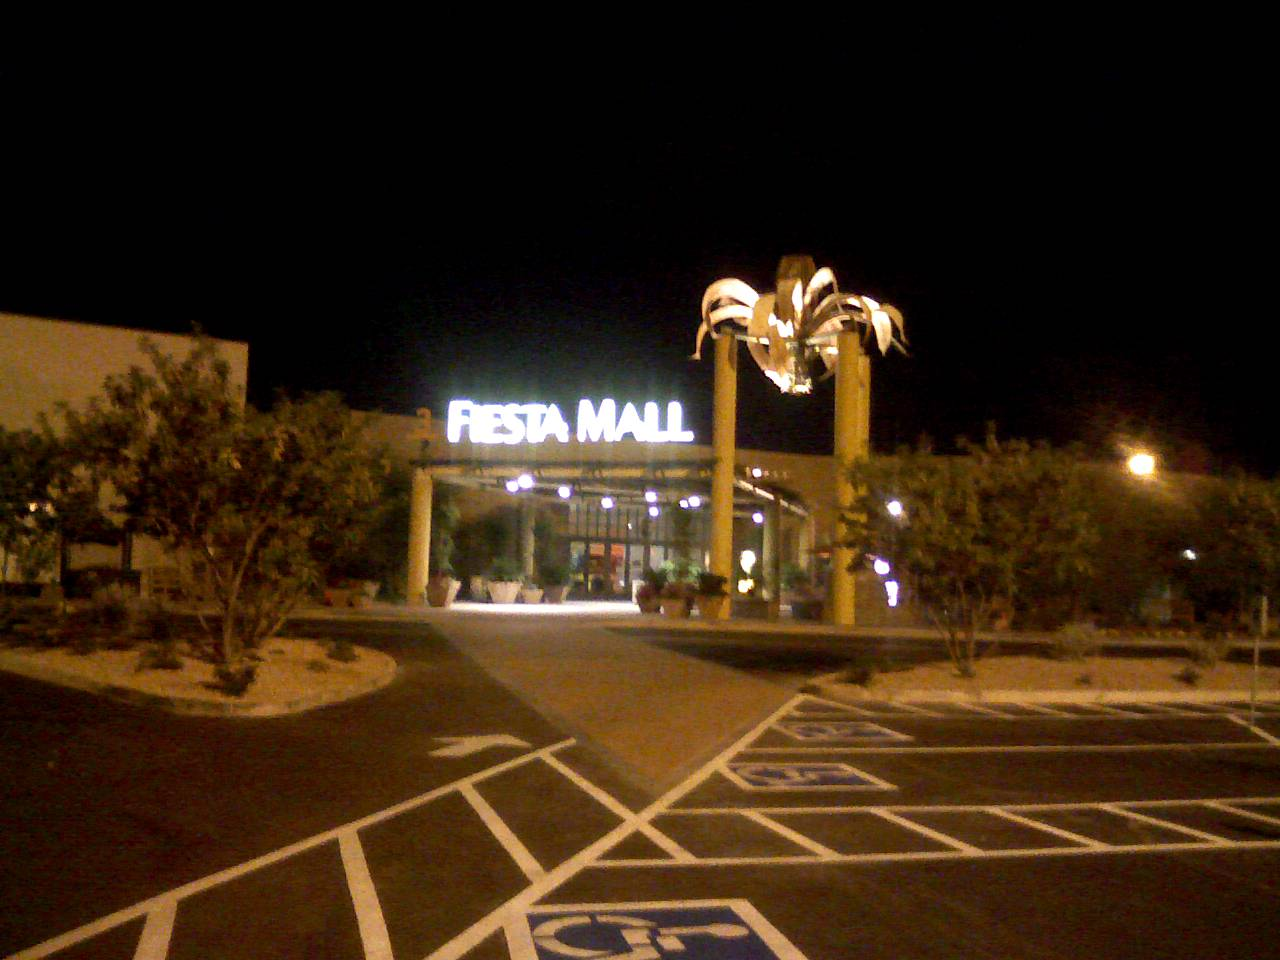 Fiesta Mall Wikipedia